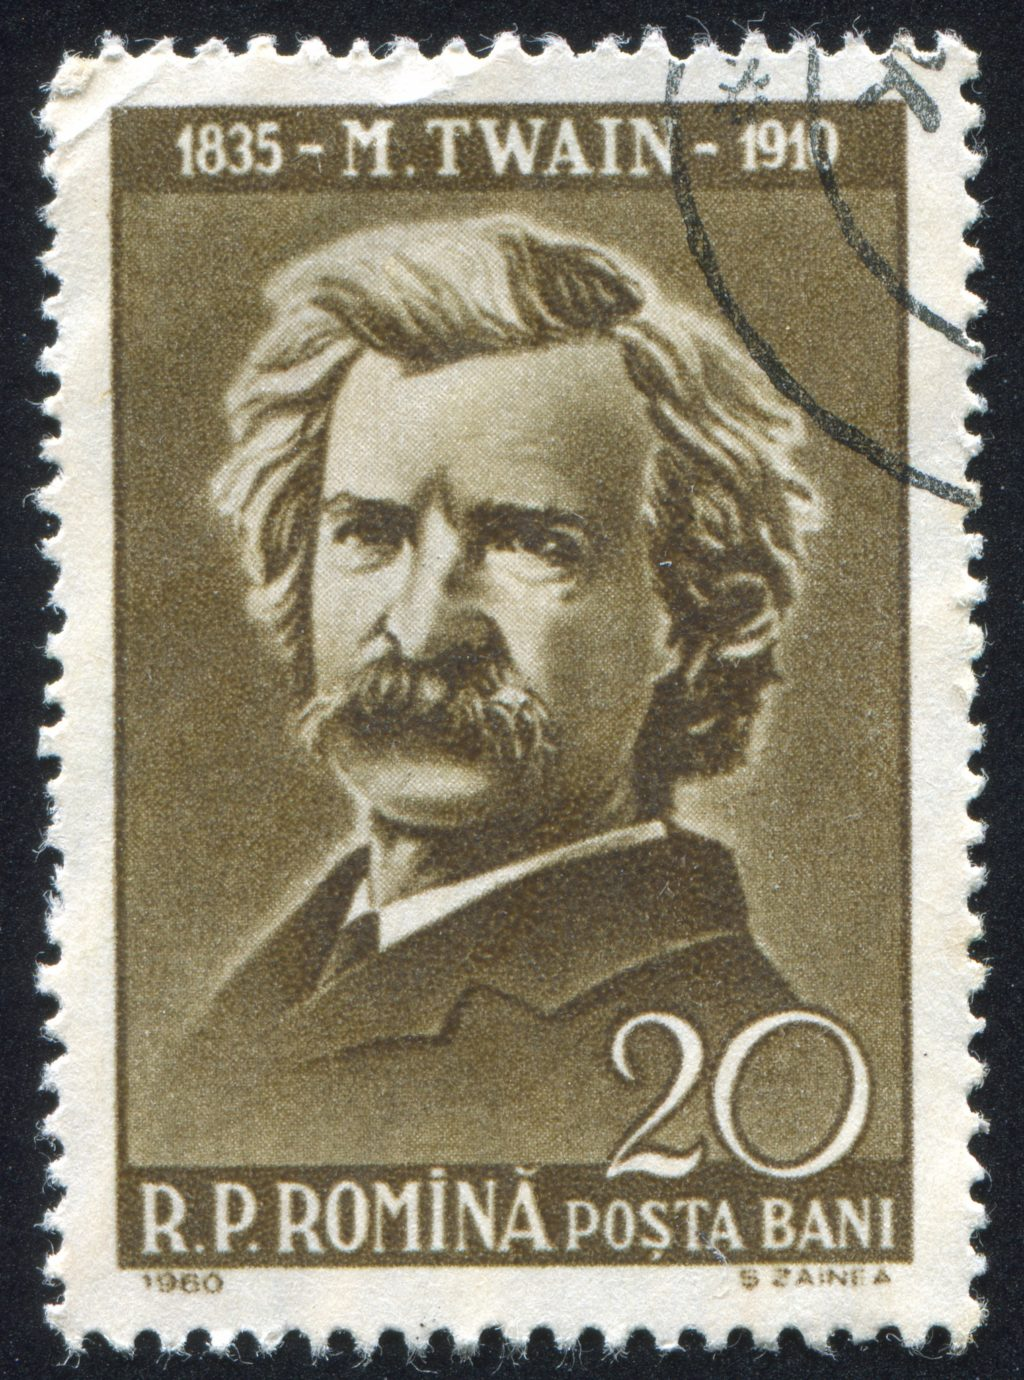 Dan Soschin - Mark Twain Stamp